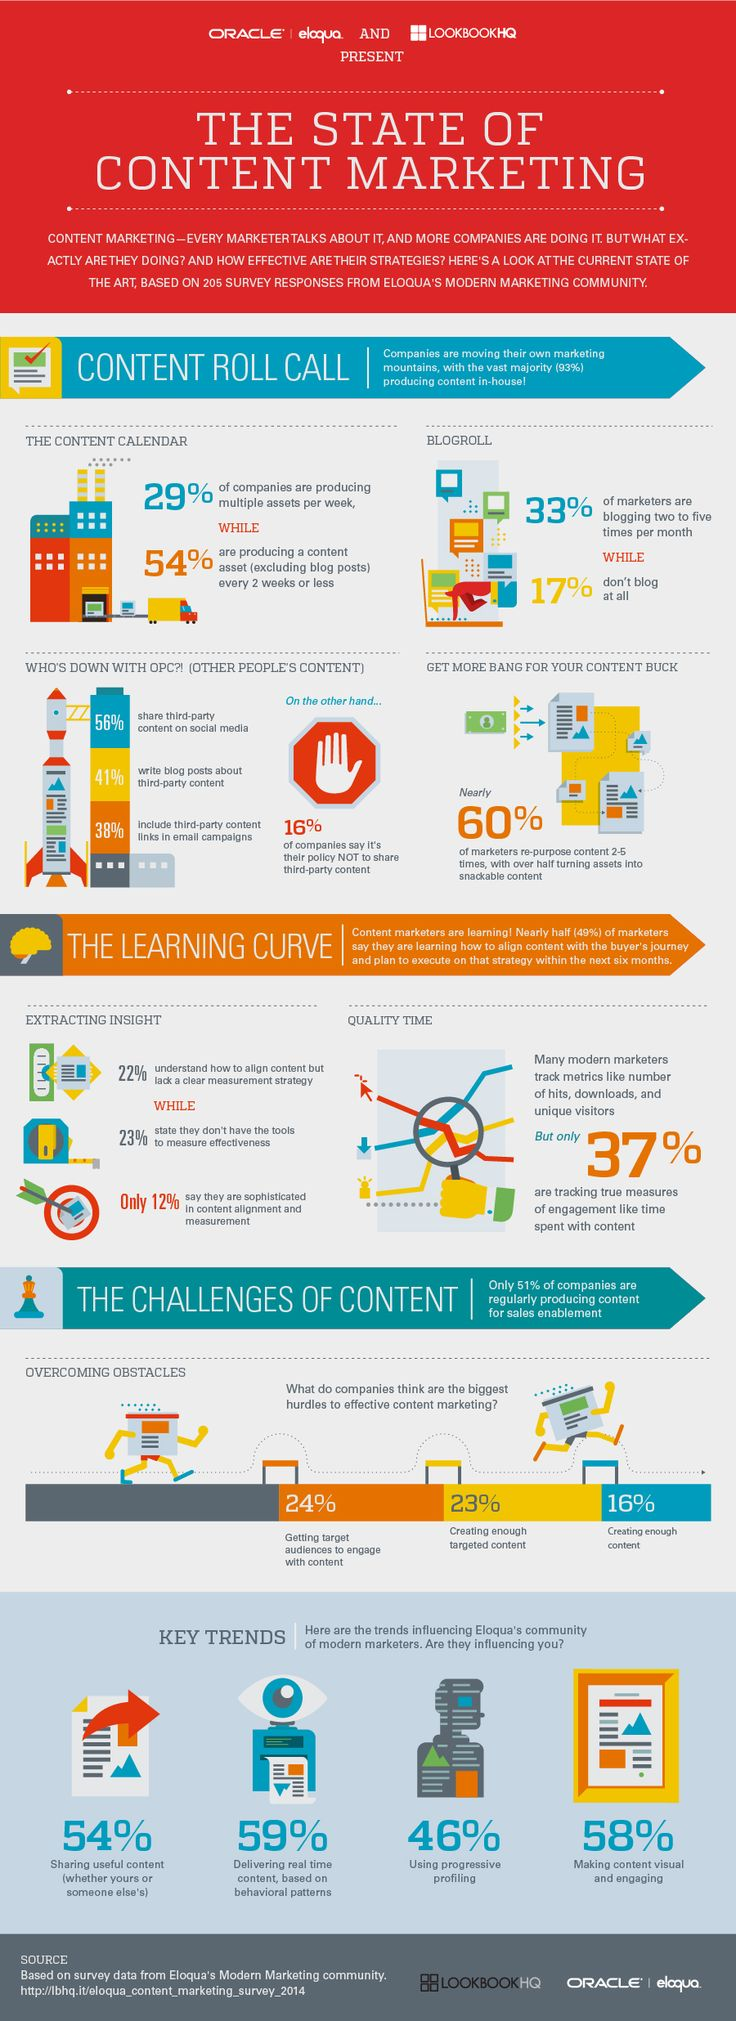 The State of Content Marketing 2014   #ContentMarkting #Marketing #Infographic